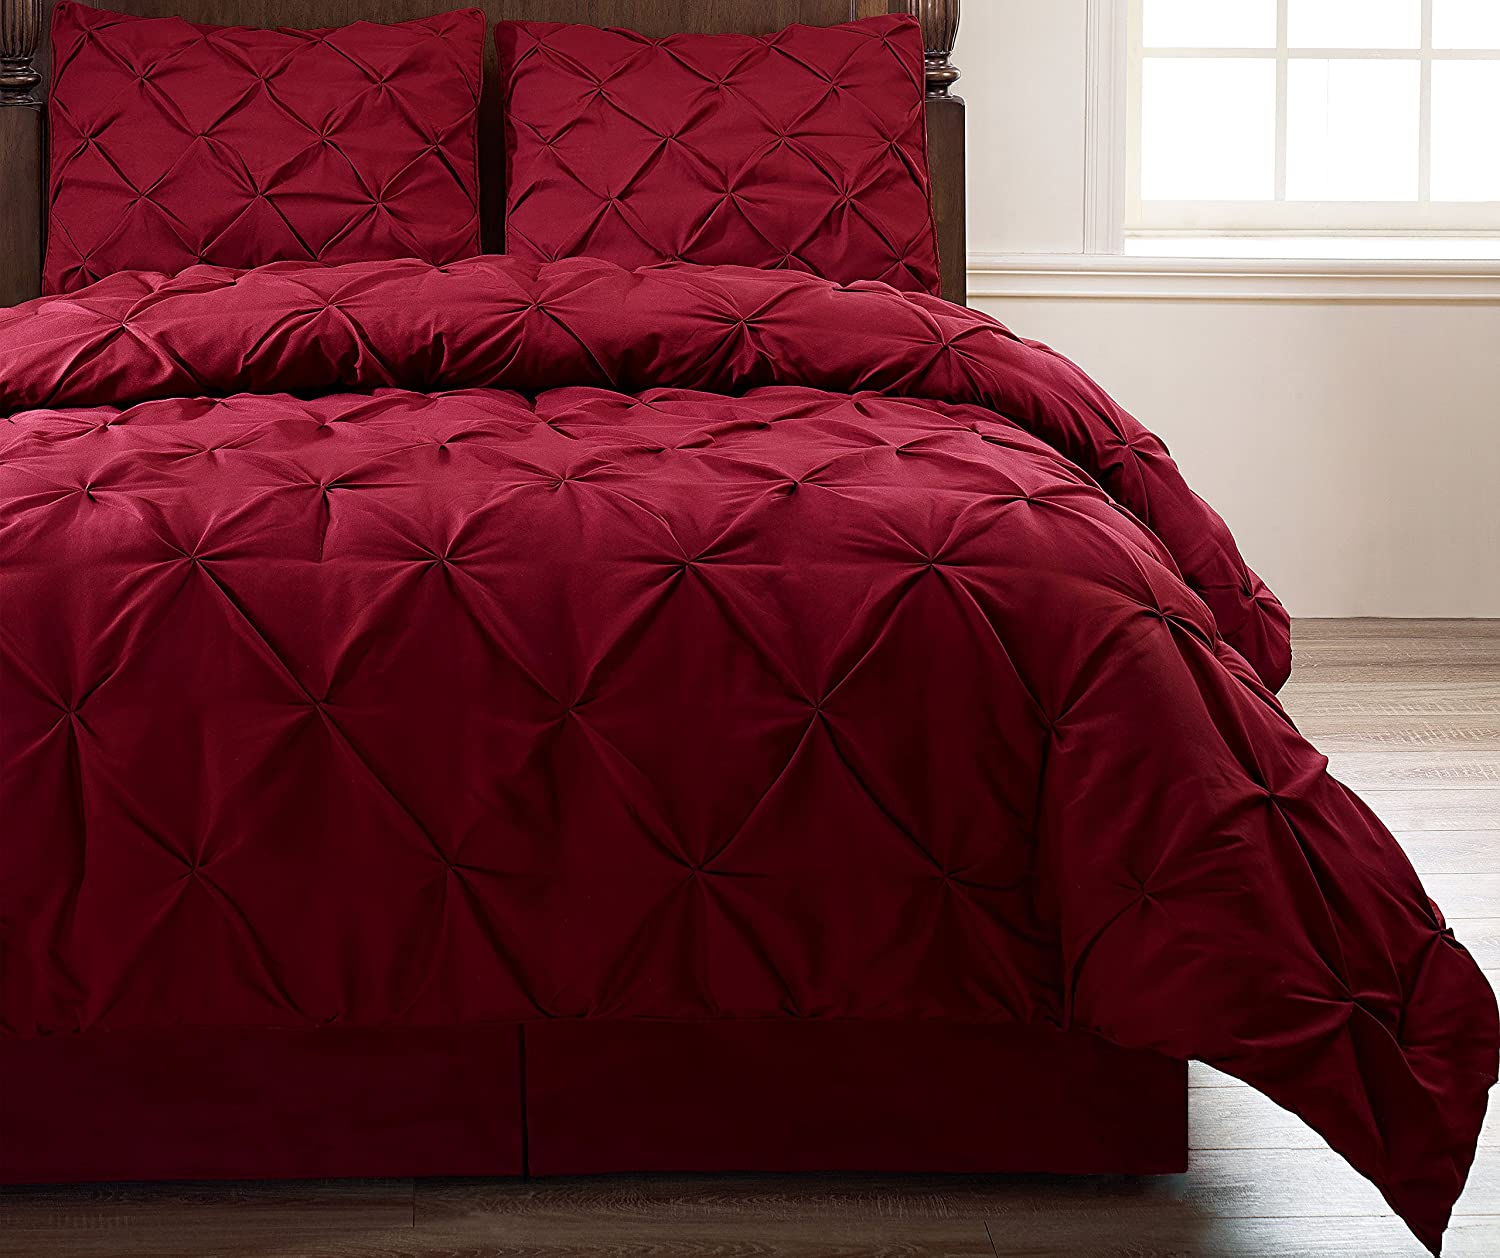 Pinch Pleat Burgundy Color King Size 4-Piece Comforter Set